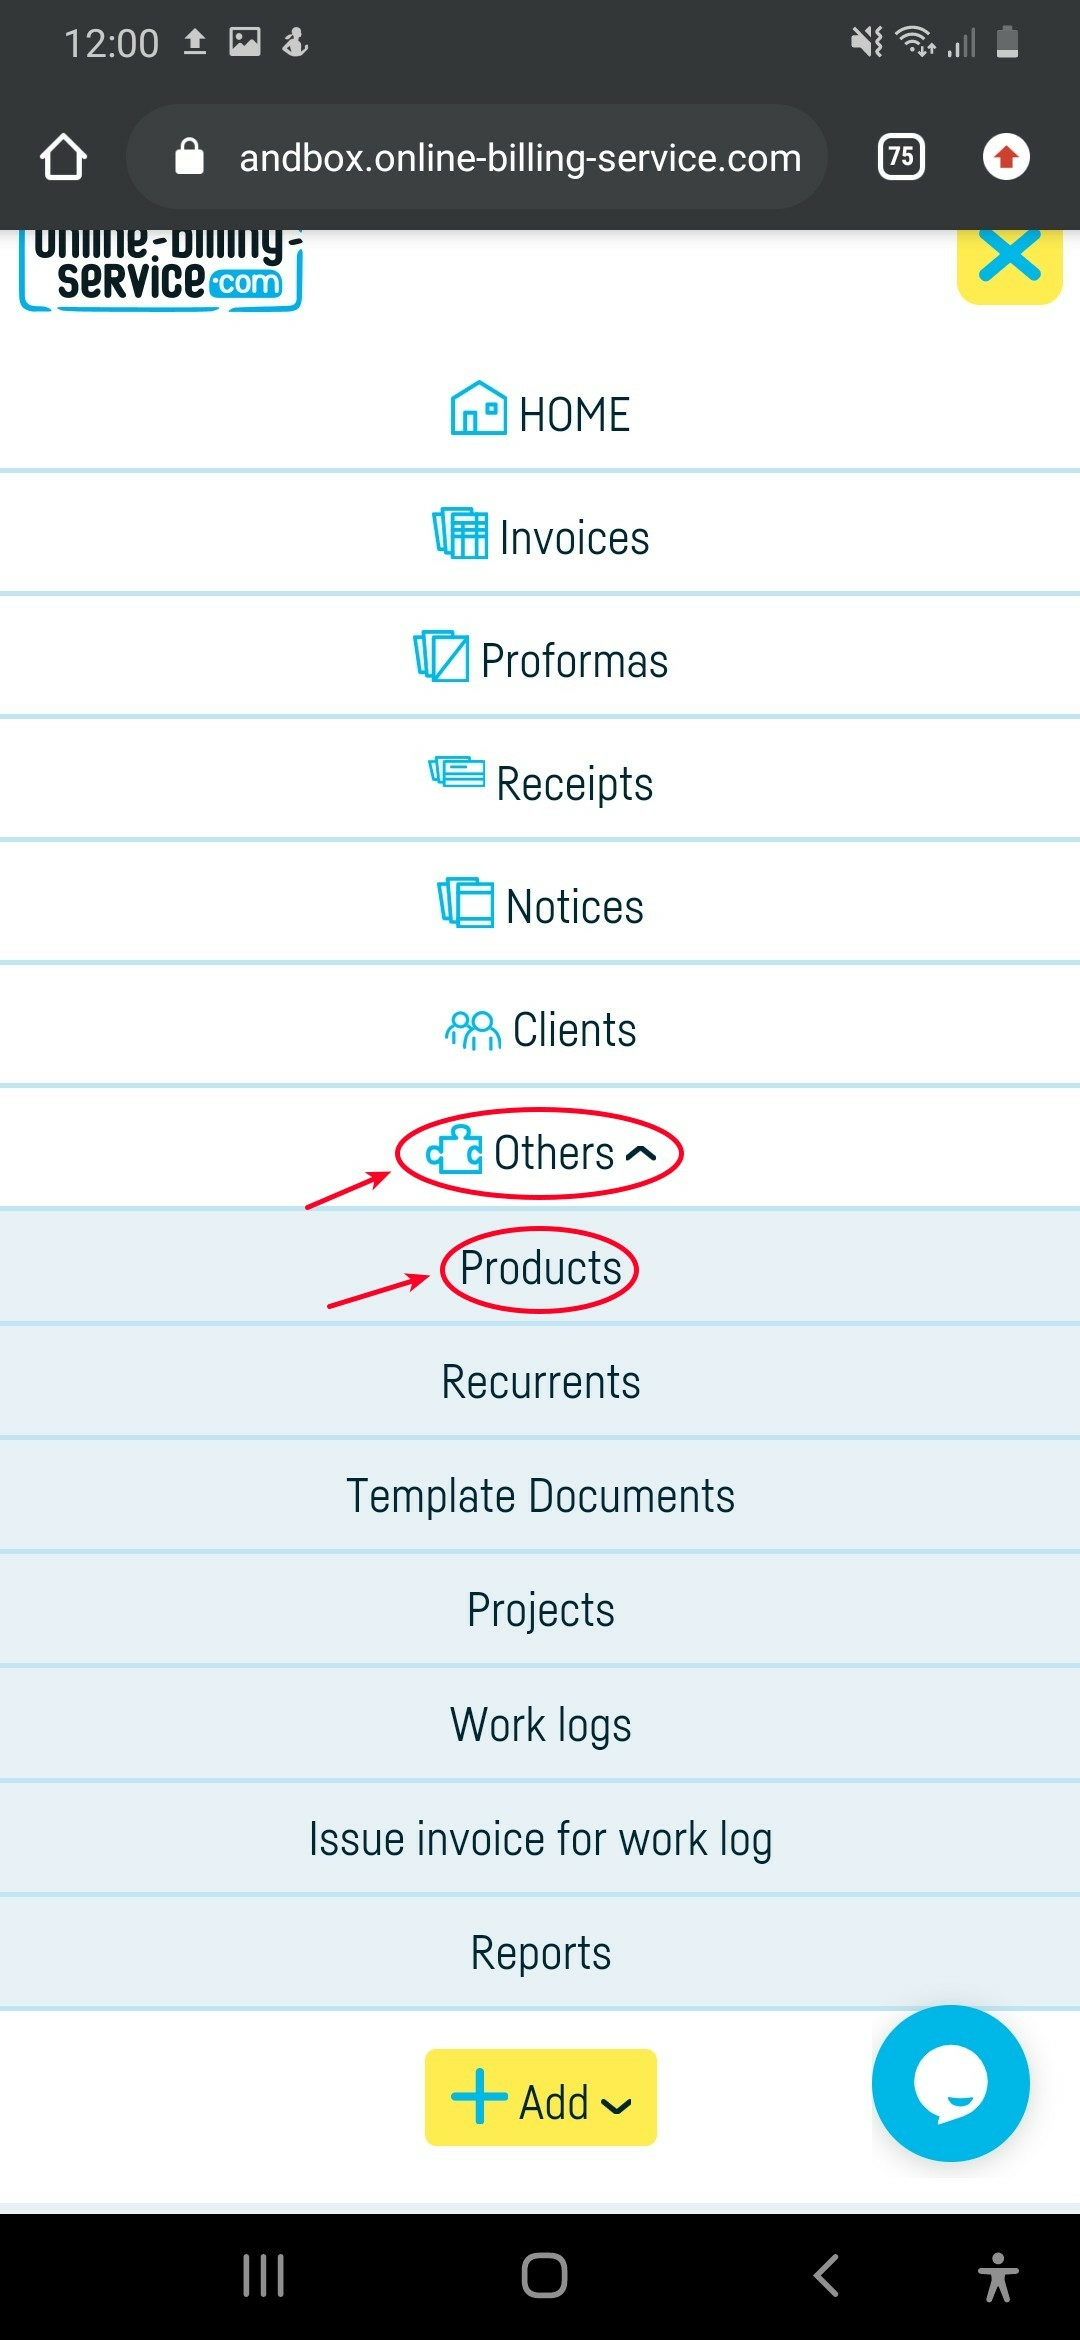 How do I import a product or services list? - step 1